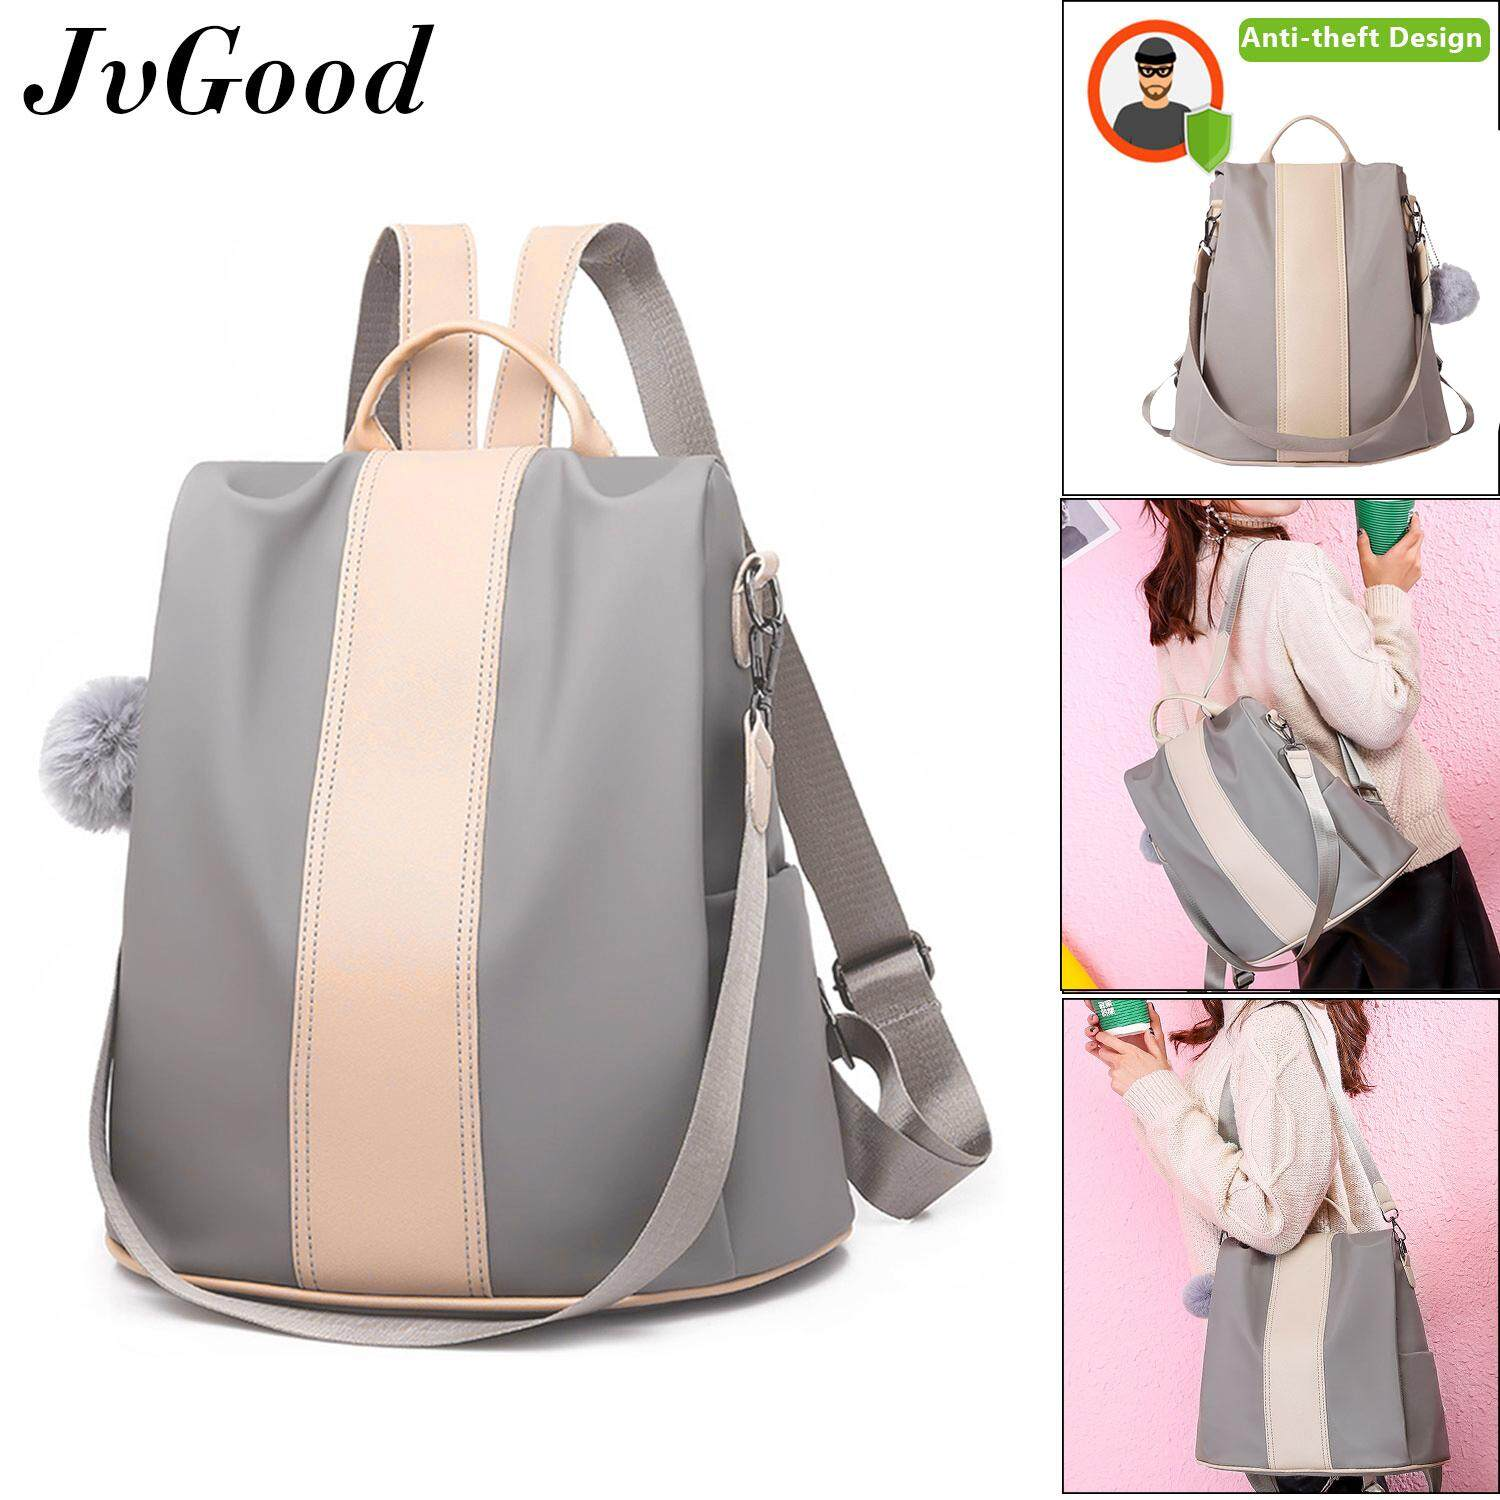 56116accd3 Latest Women s Bags Only on Lazada Malaysia!